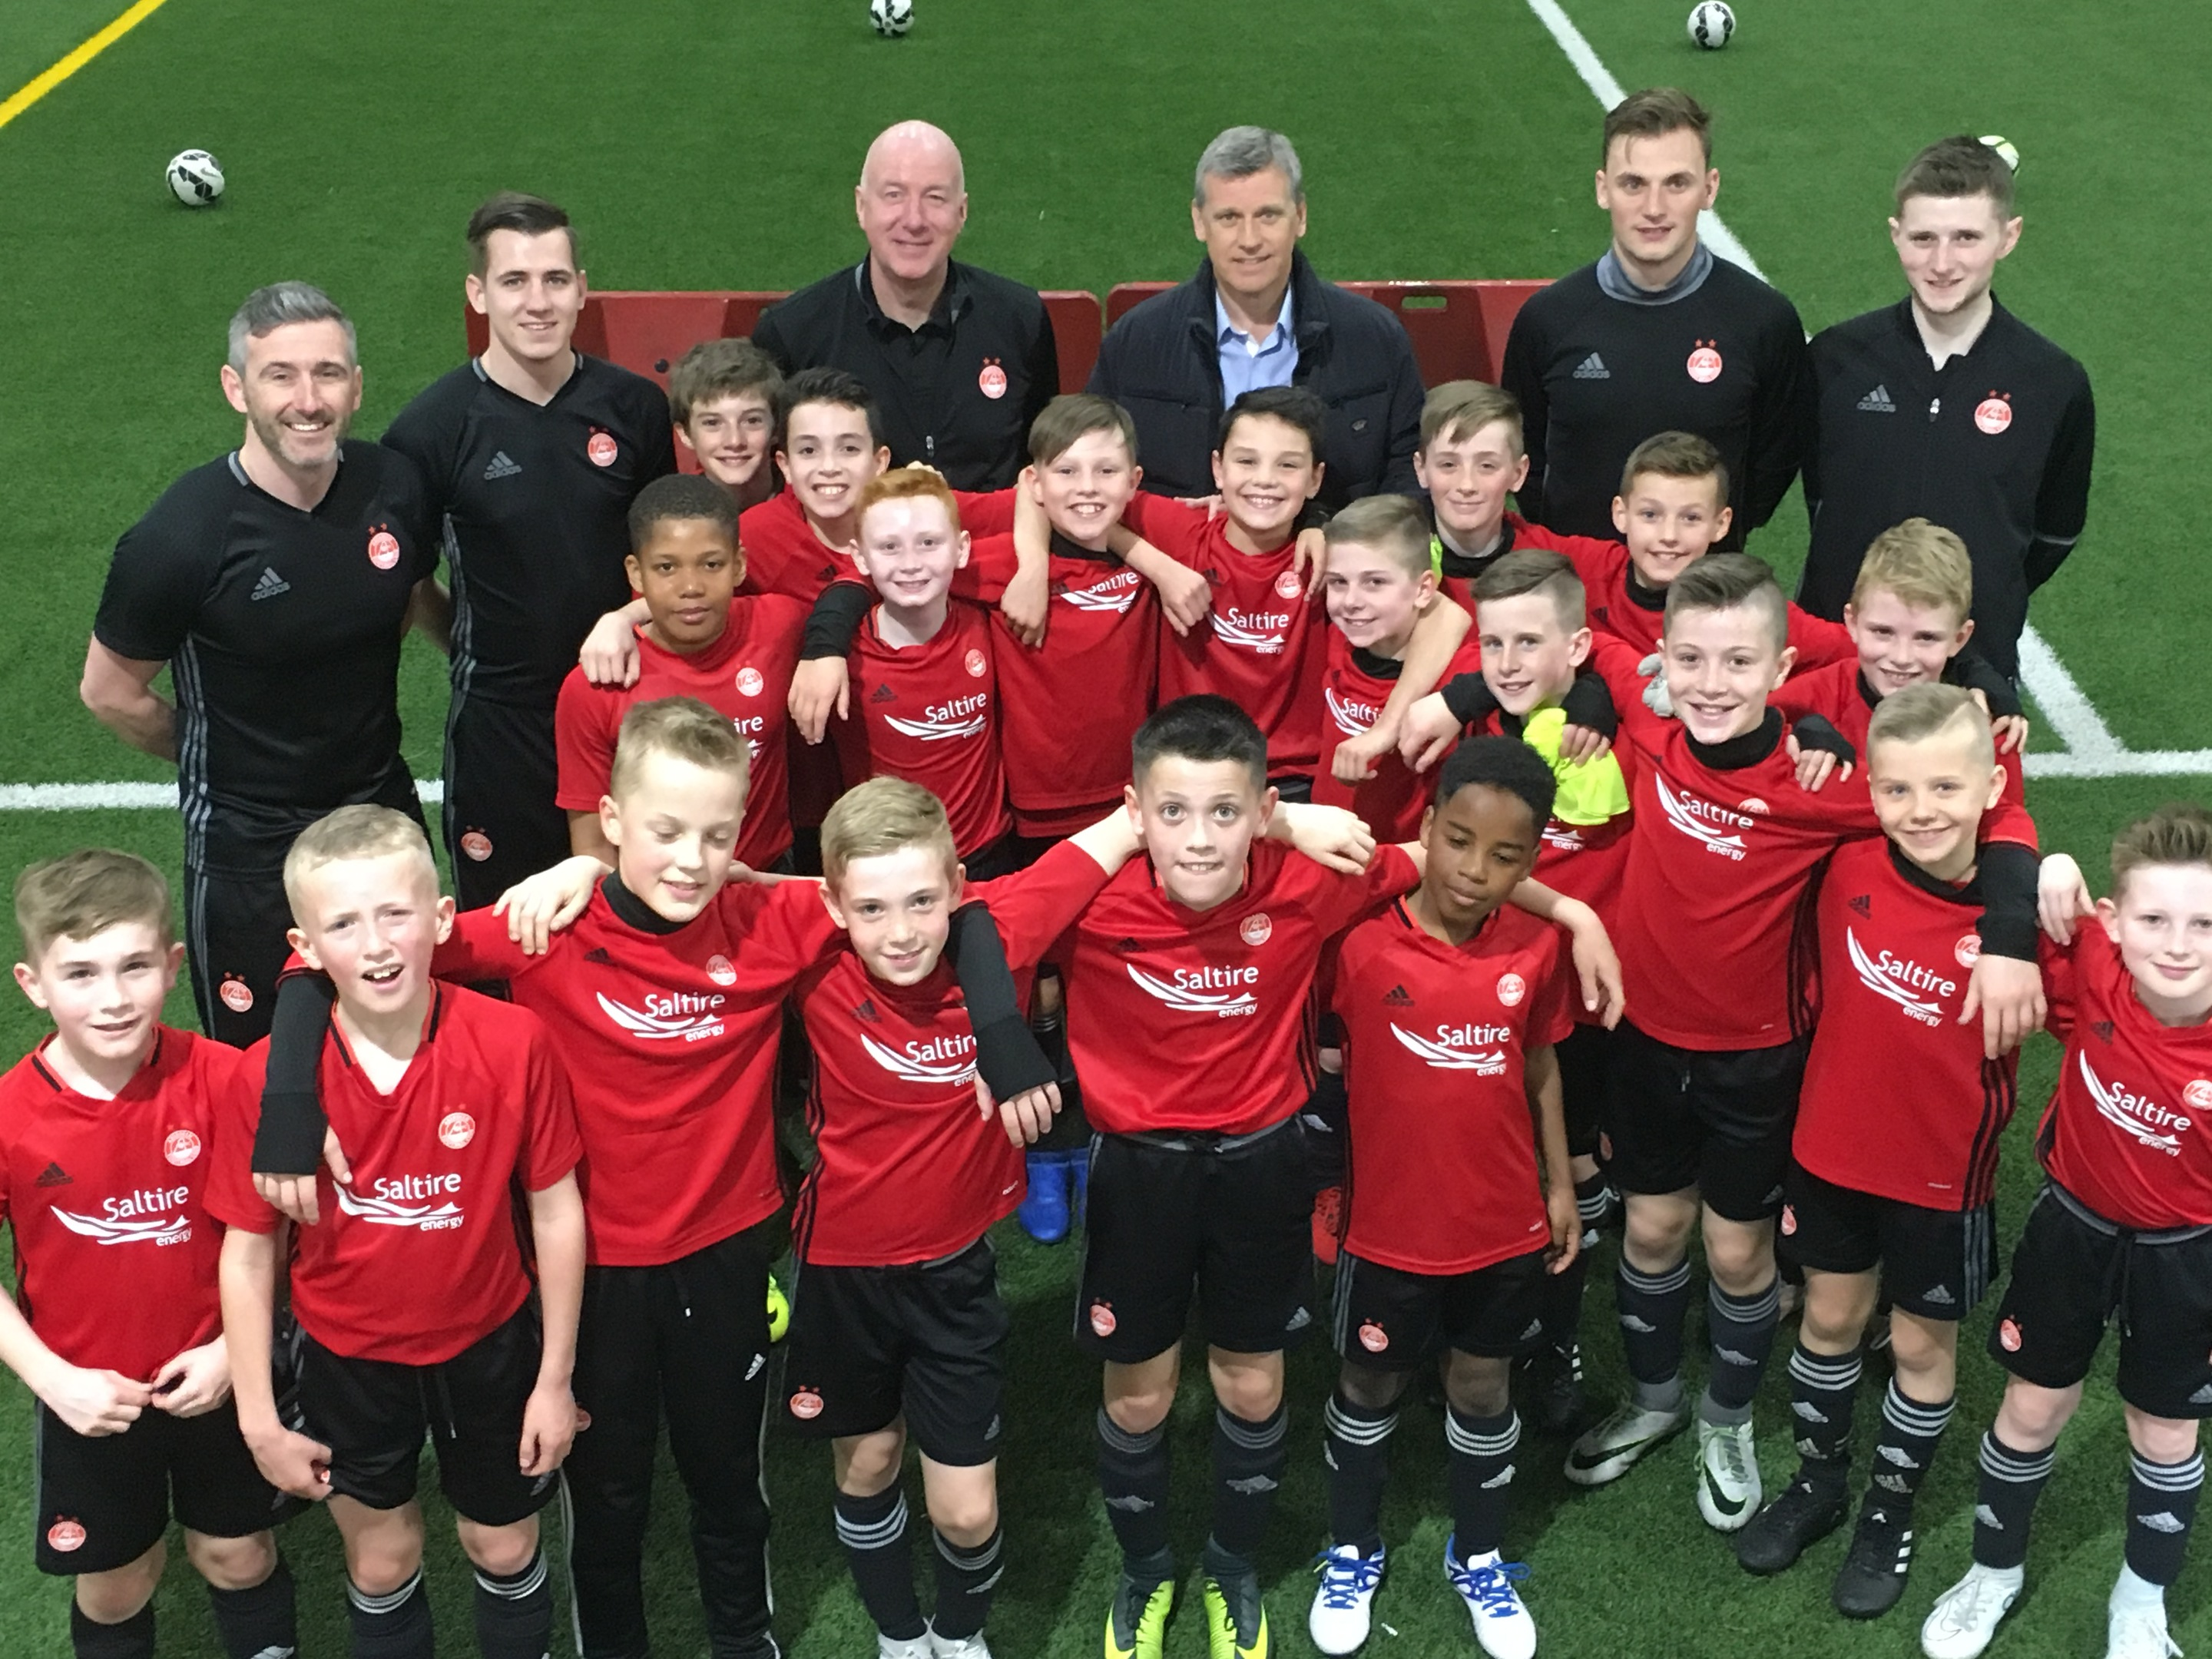 Aberdeen Under-10 and U11 sides with Dons legends Neil Simpson, back row, third from left, and Eric Black, beside him.